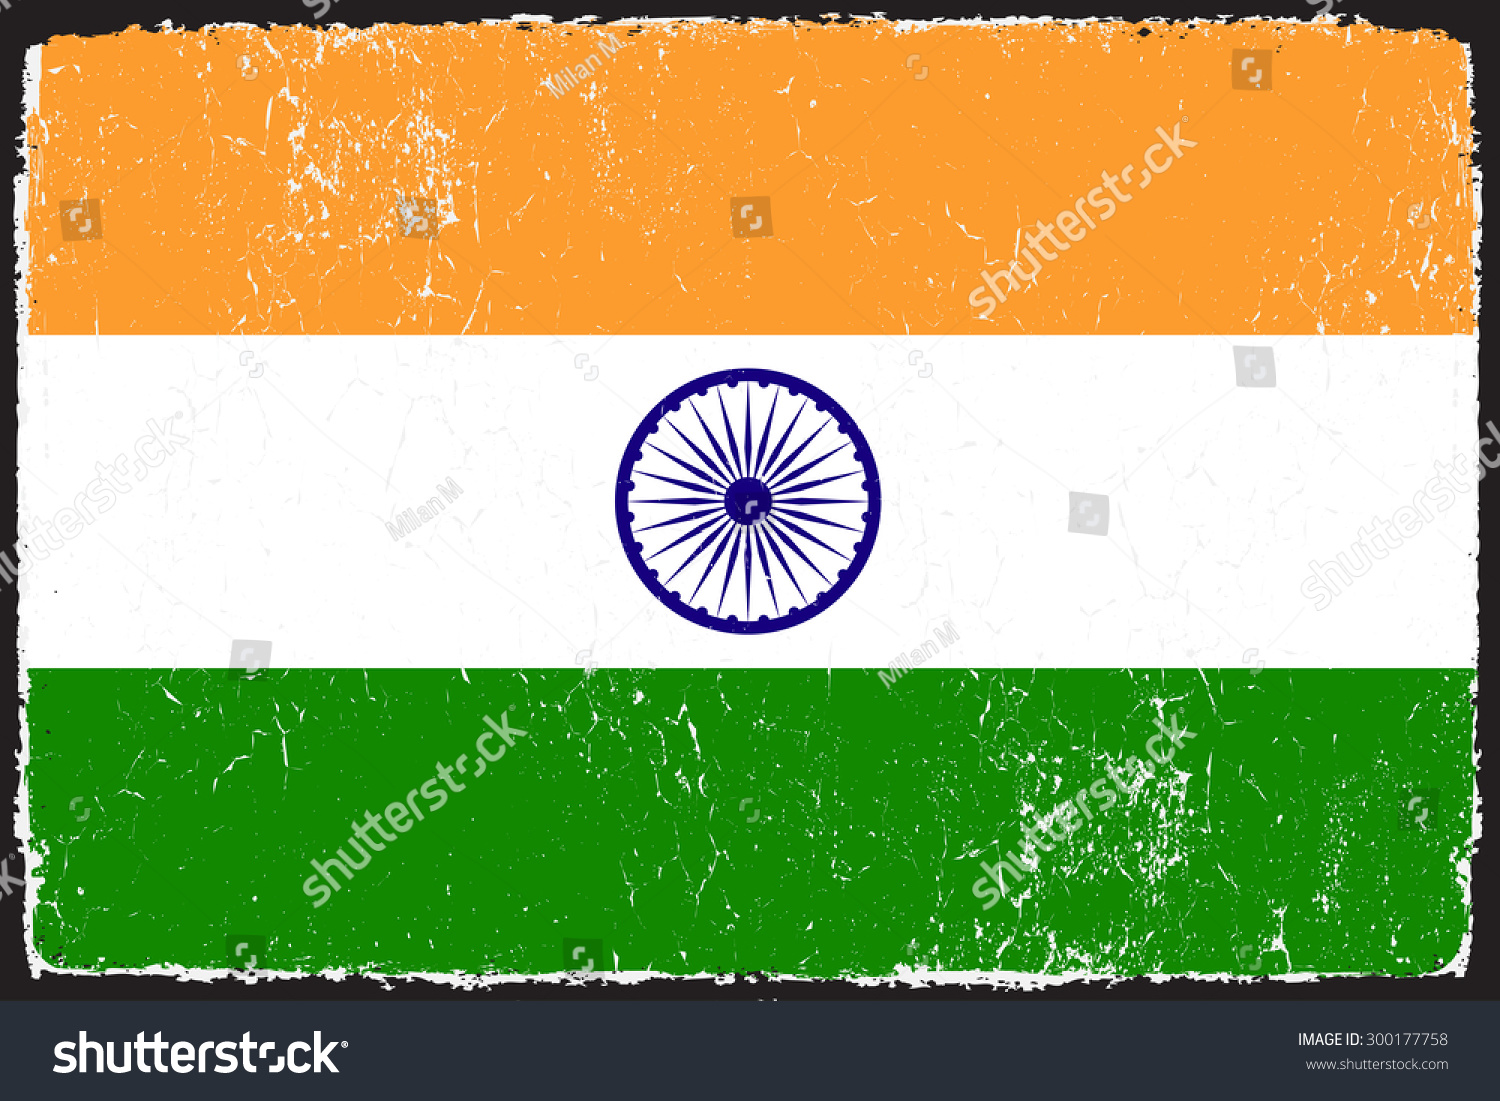 Grunge India Flag Indian Flag Grunge Texture Vector Stock Vector ...